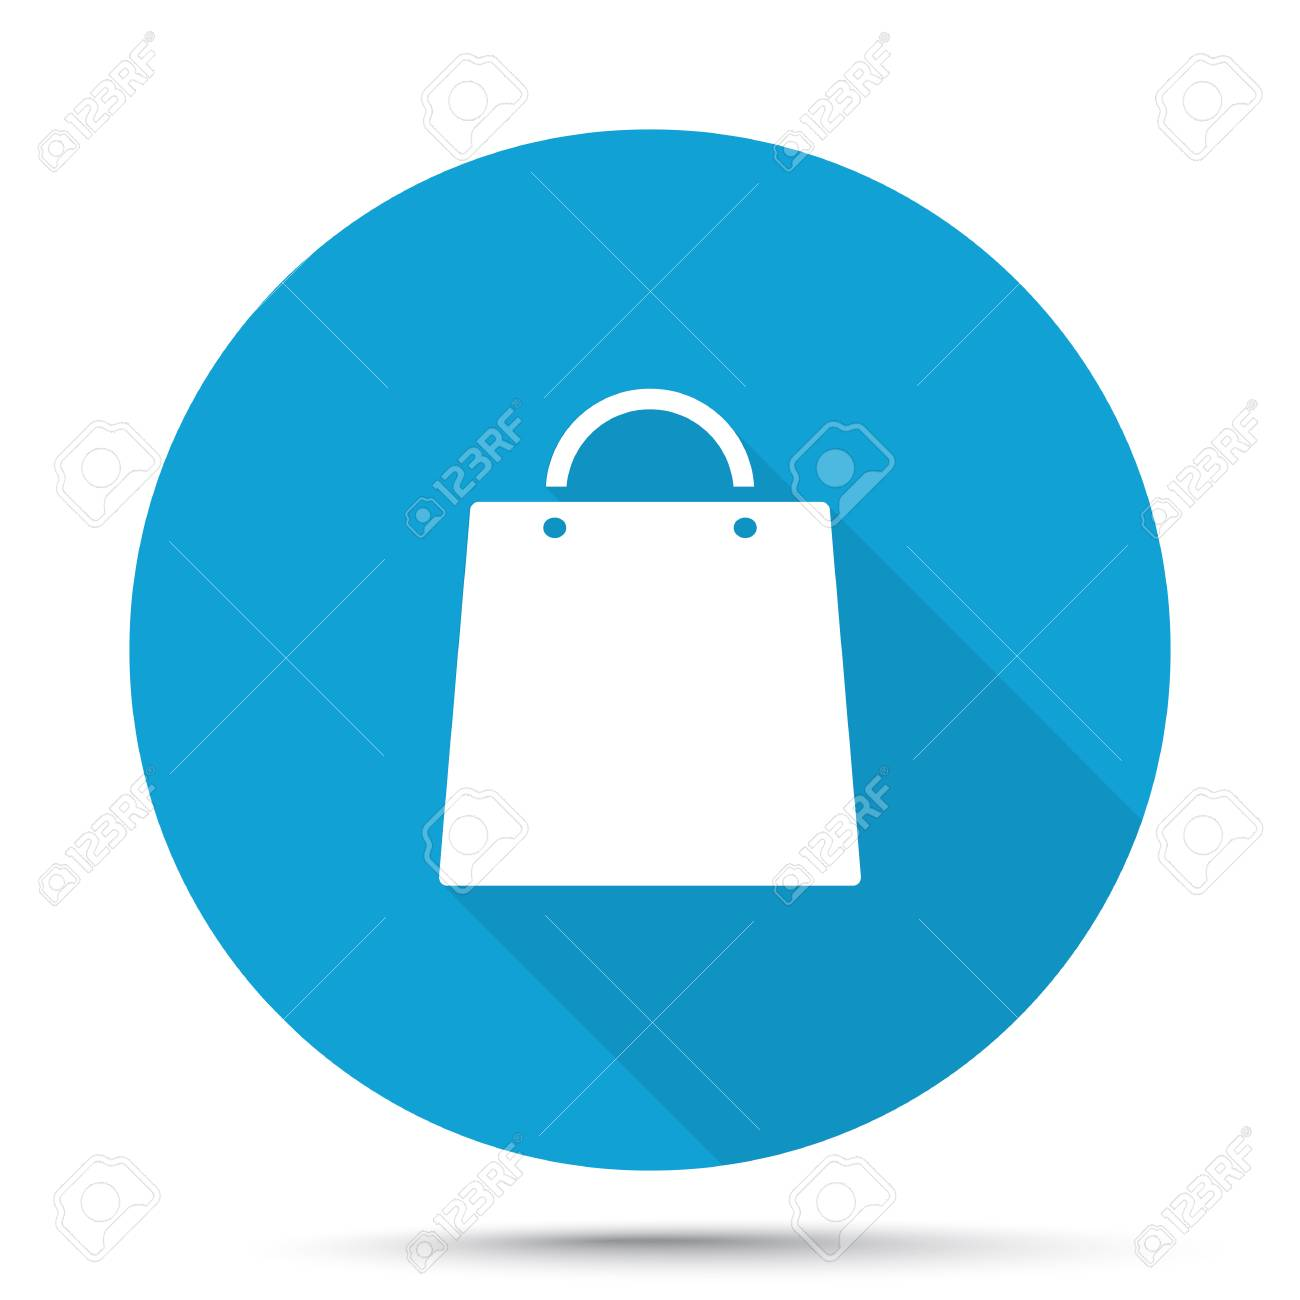 White Shopping Bag Icon On Blue Button Isolated On White Royalty